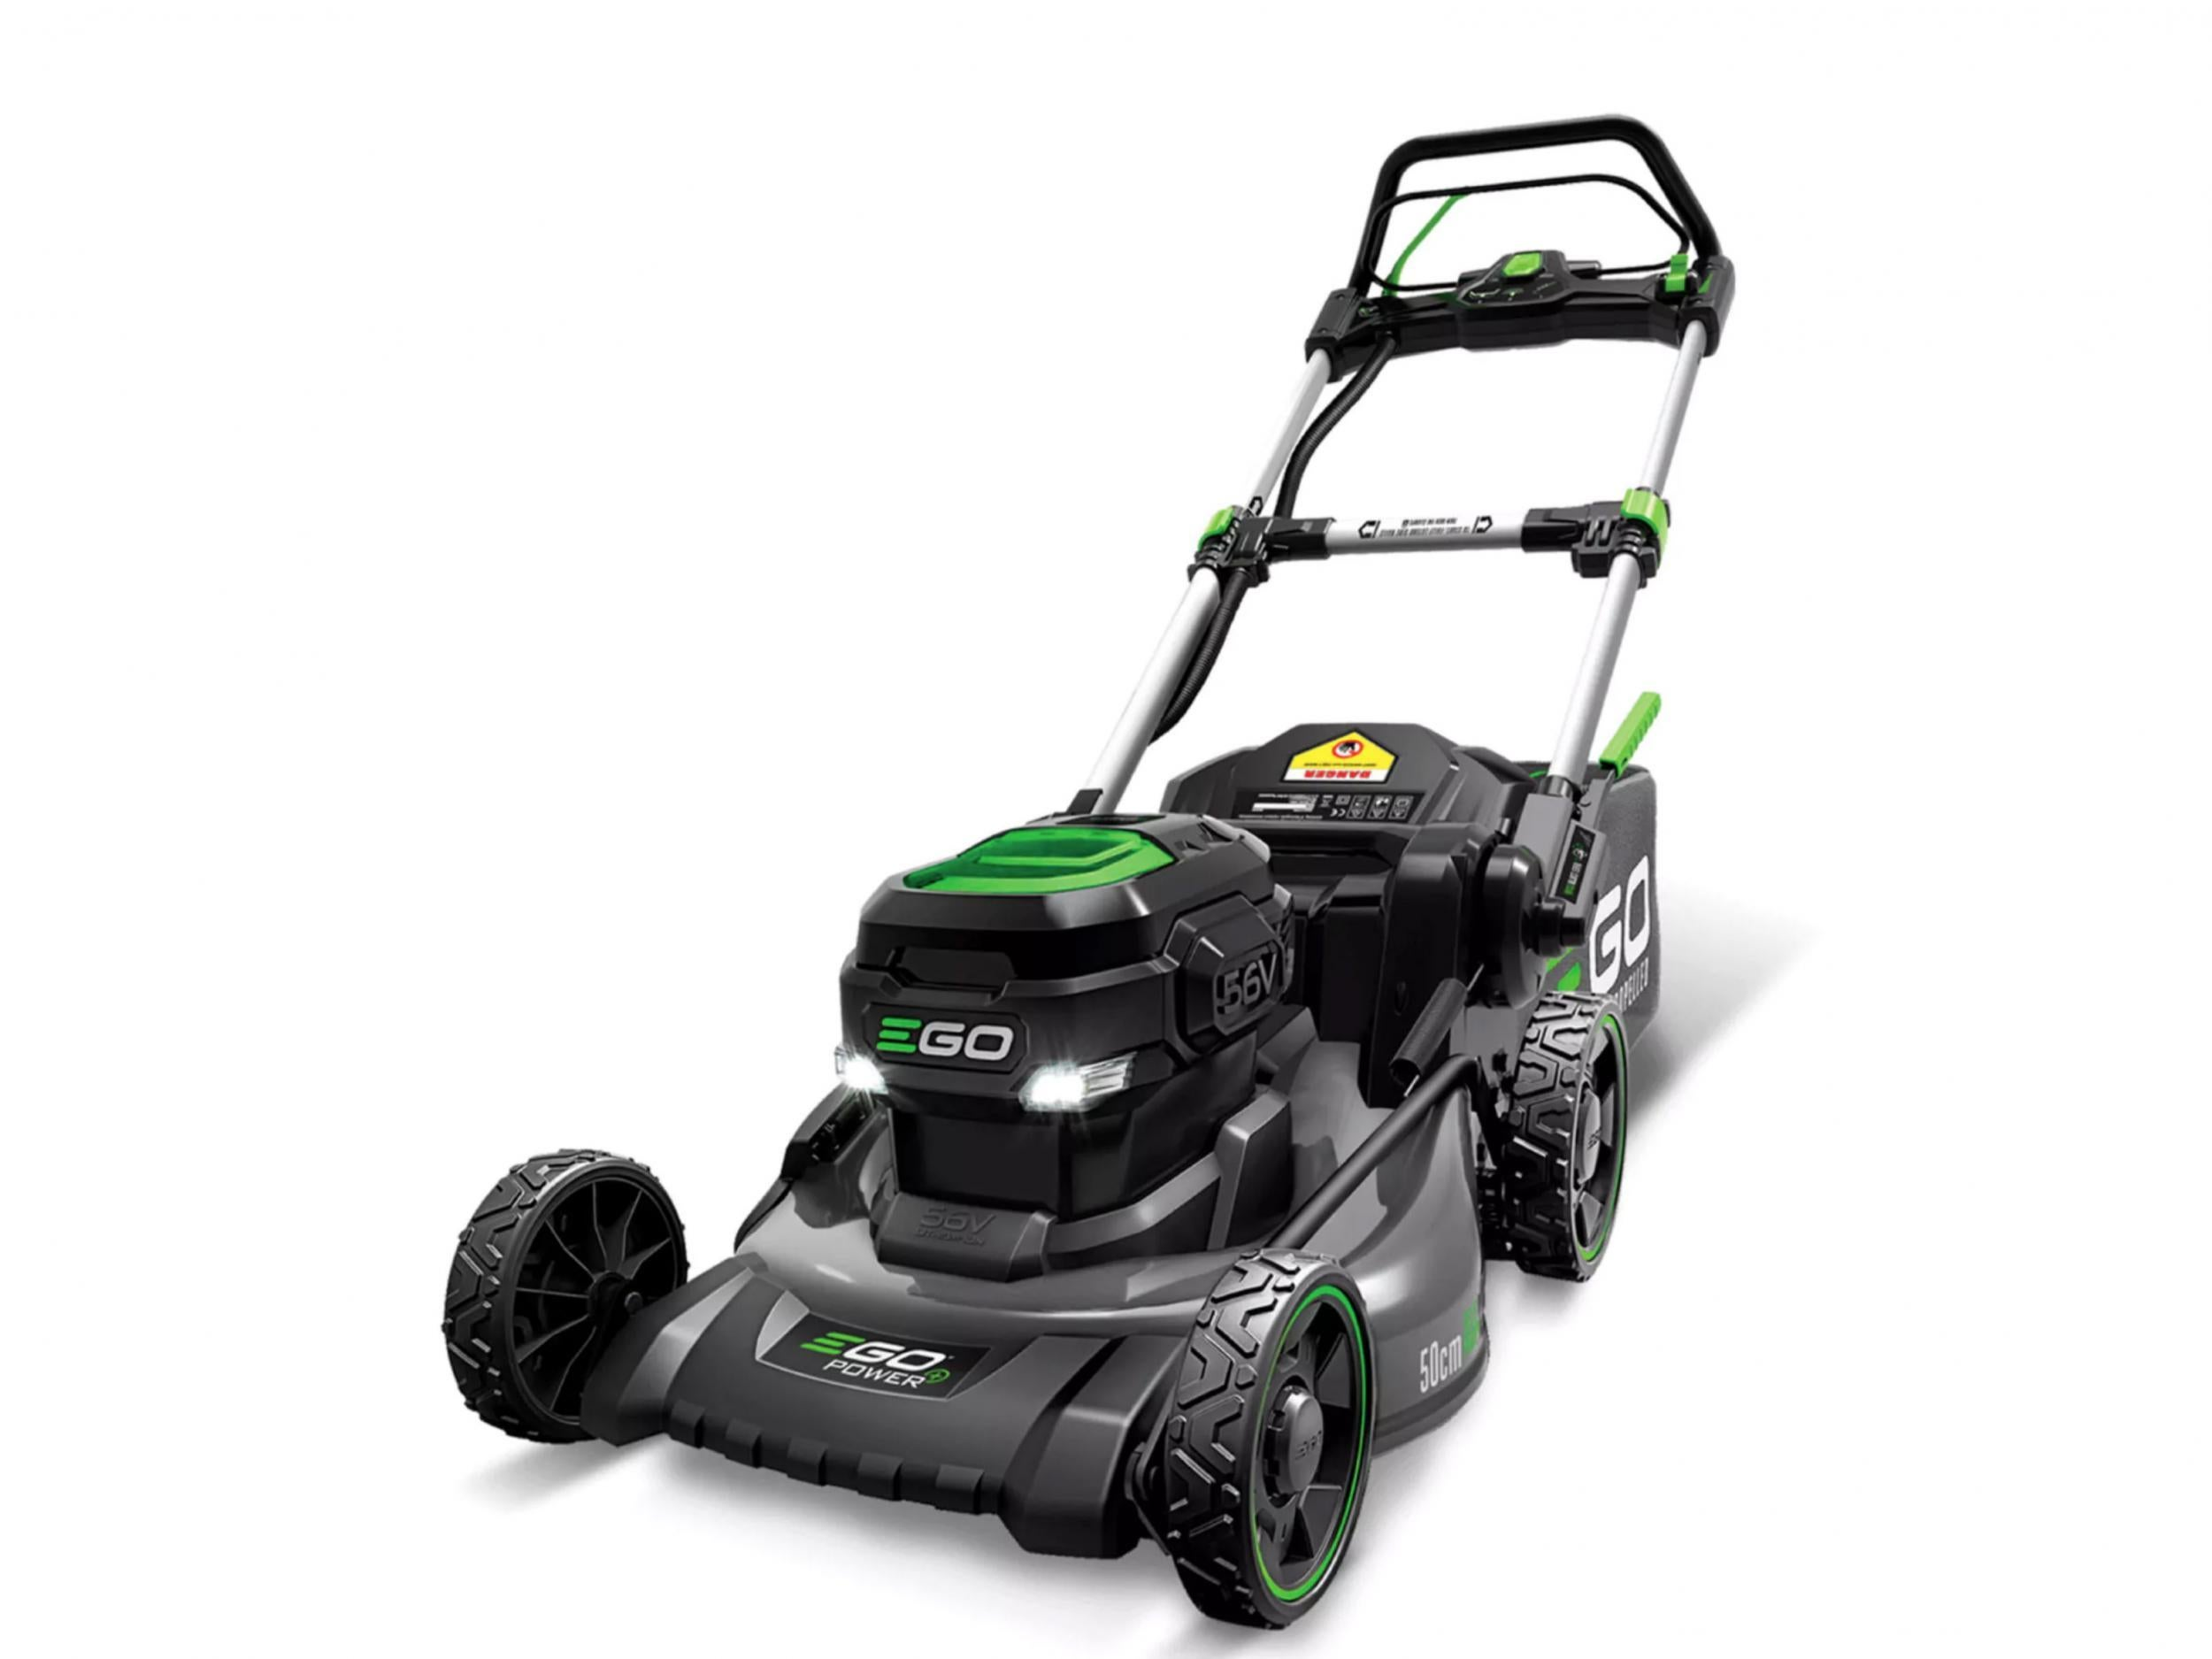 Lawn mower Viking electric and petrol self-propelled: reviews